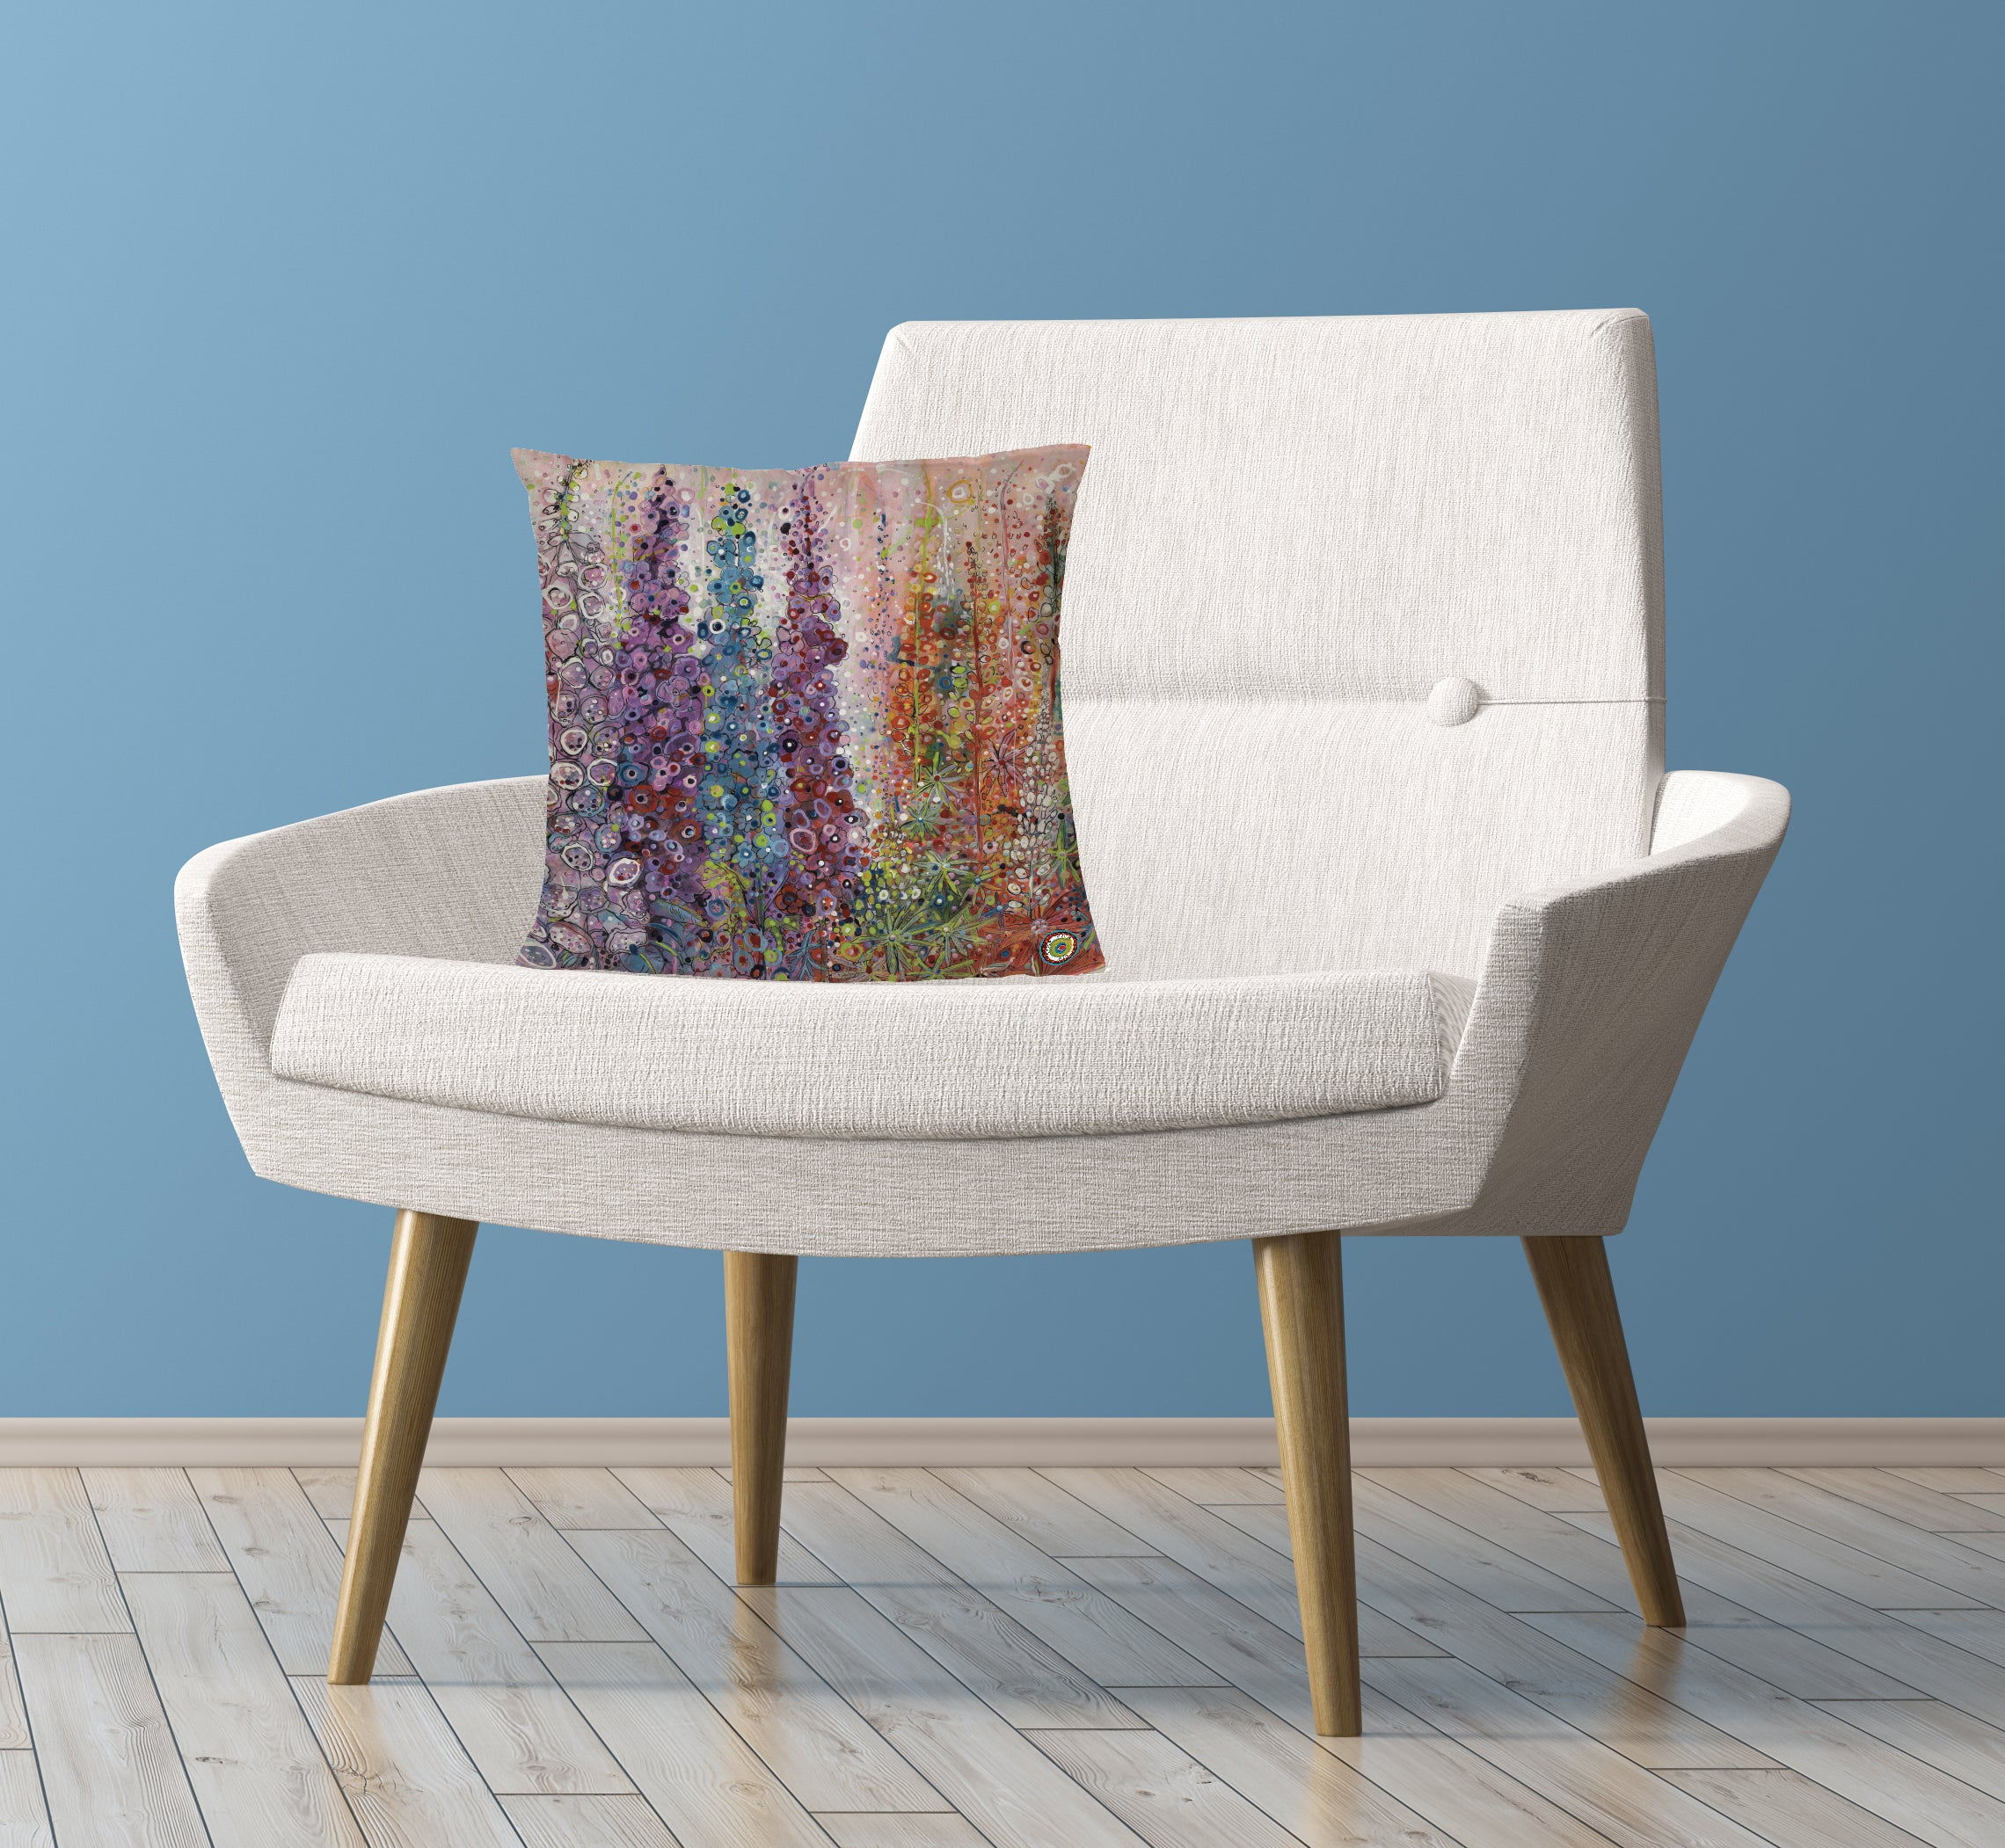 Cushion on Chair Colourful with Flowers